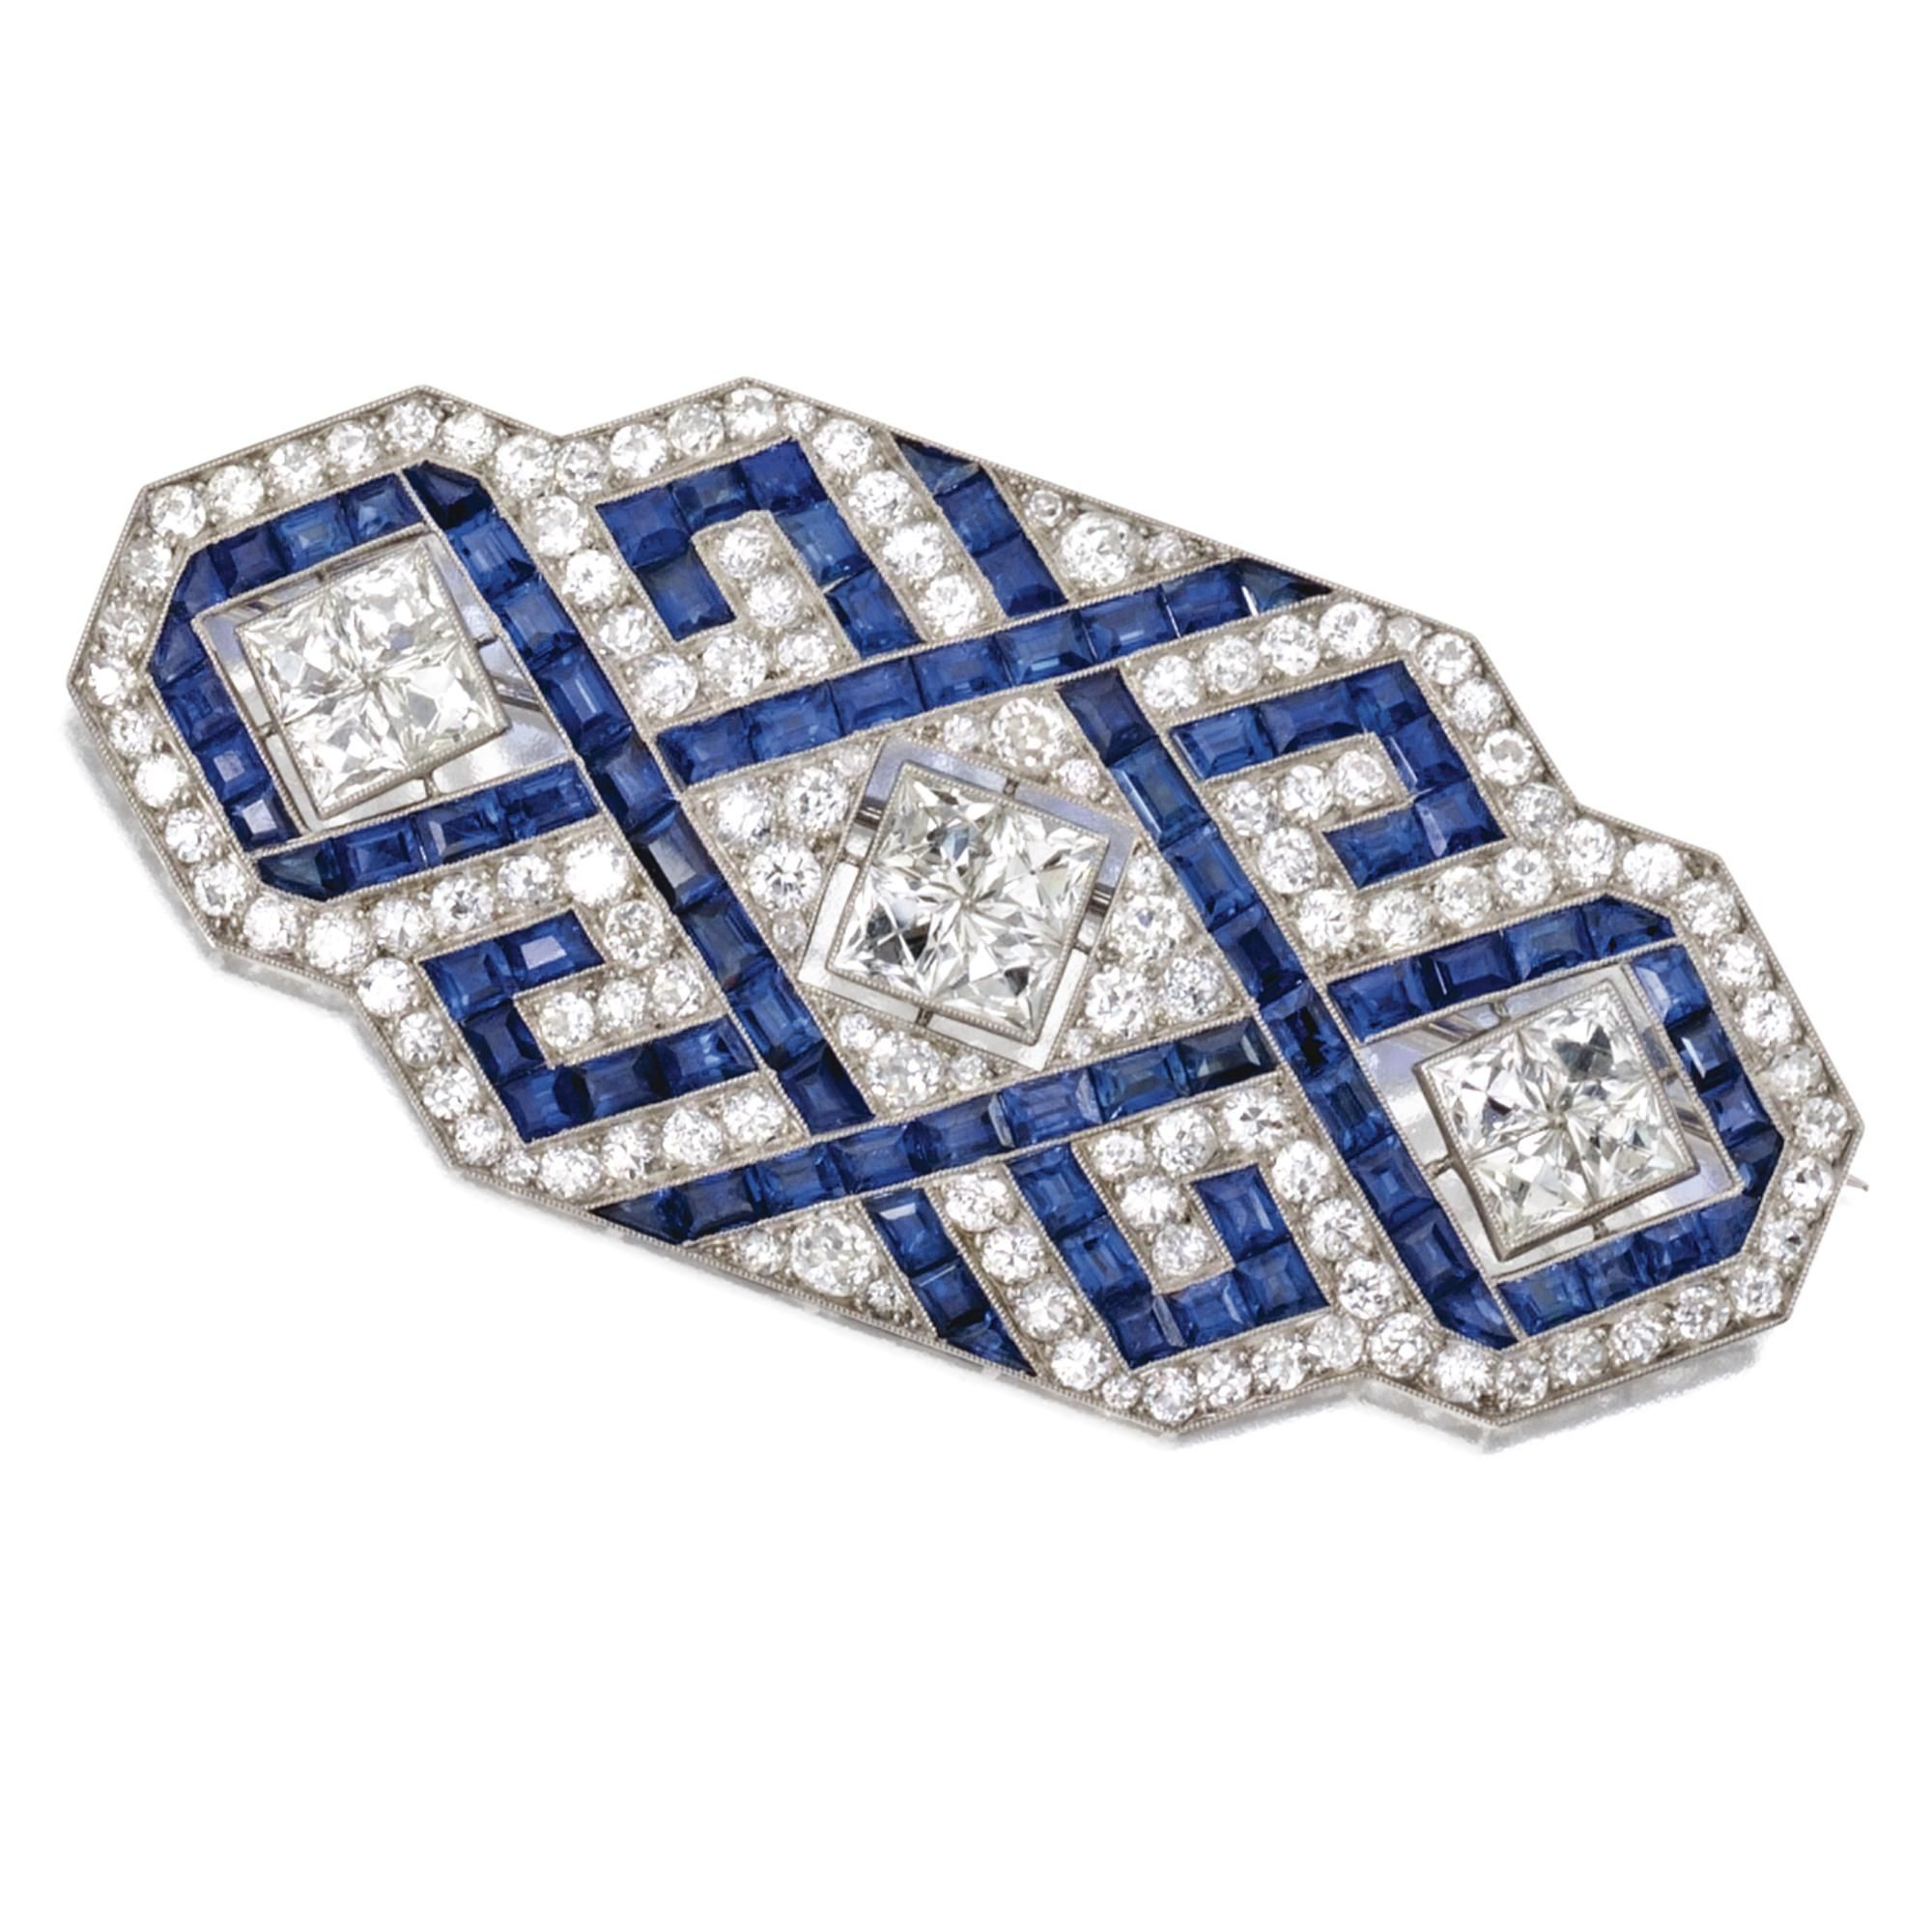 PLATINUM, SAPPHIRE AND DIAMOND BROOCH, FRENCH, CIRCA 1920, Of geometric design set with French-cut, old European-cut and single-cut diamonds weighing approximately 8.00 carats, accented by calibré-cut sapphires, numbered 2387, maker's mark, French assay mark.